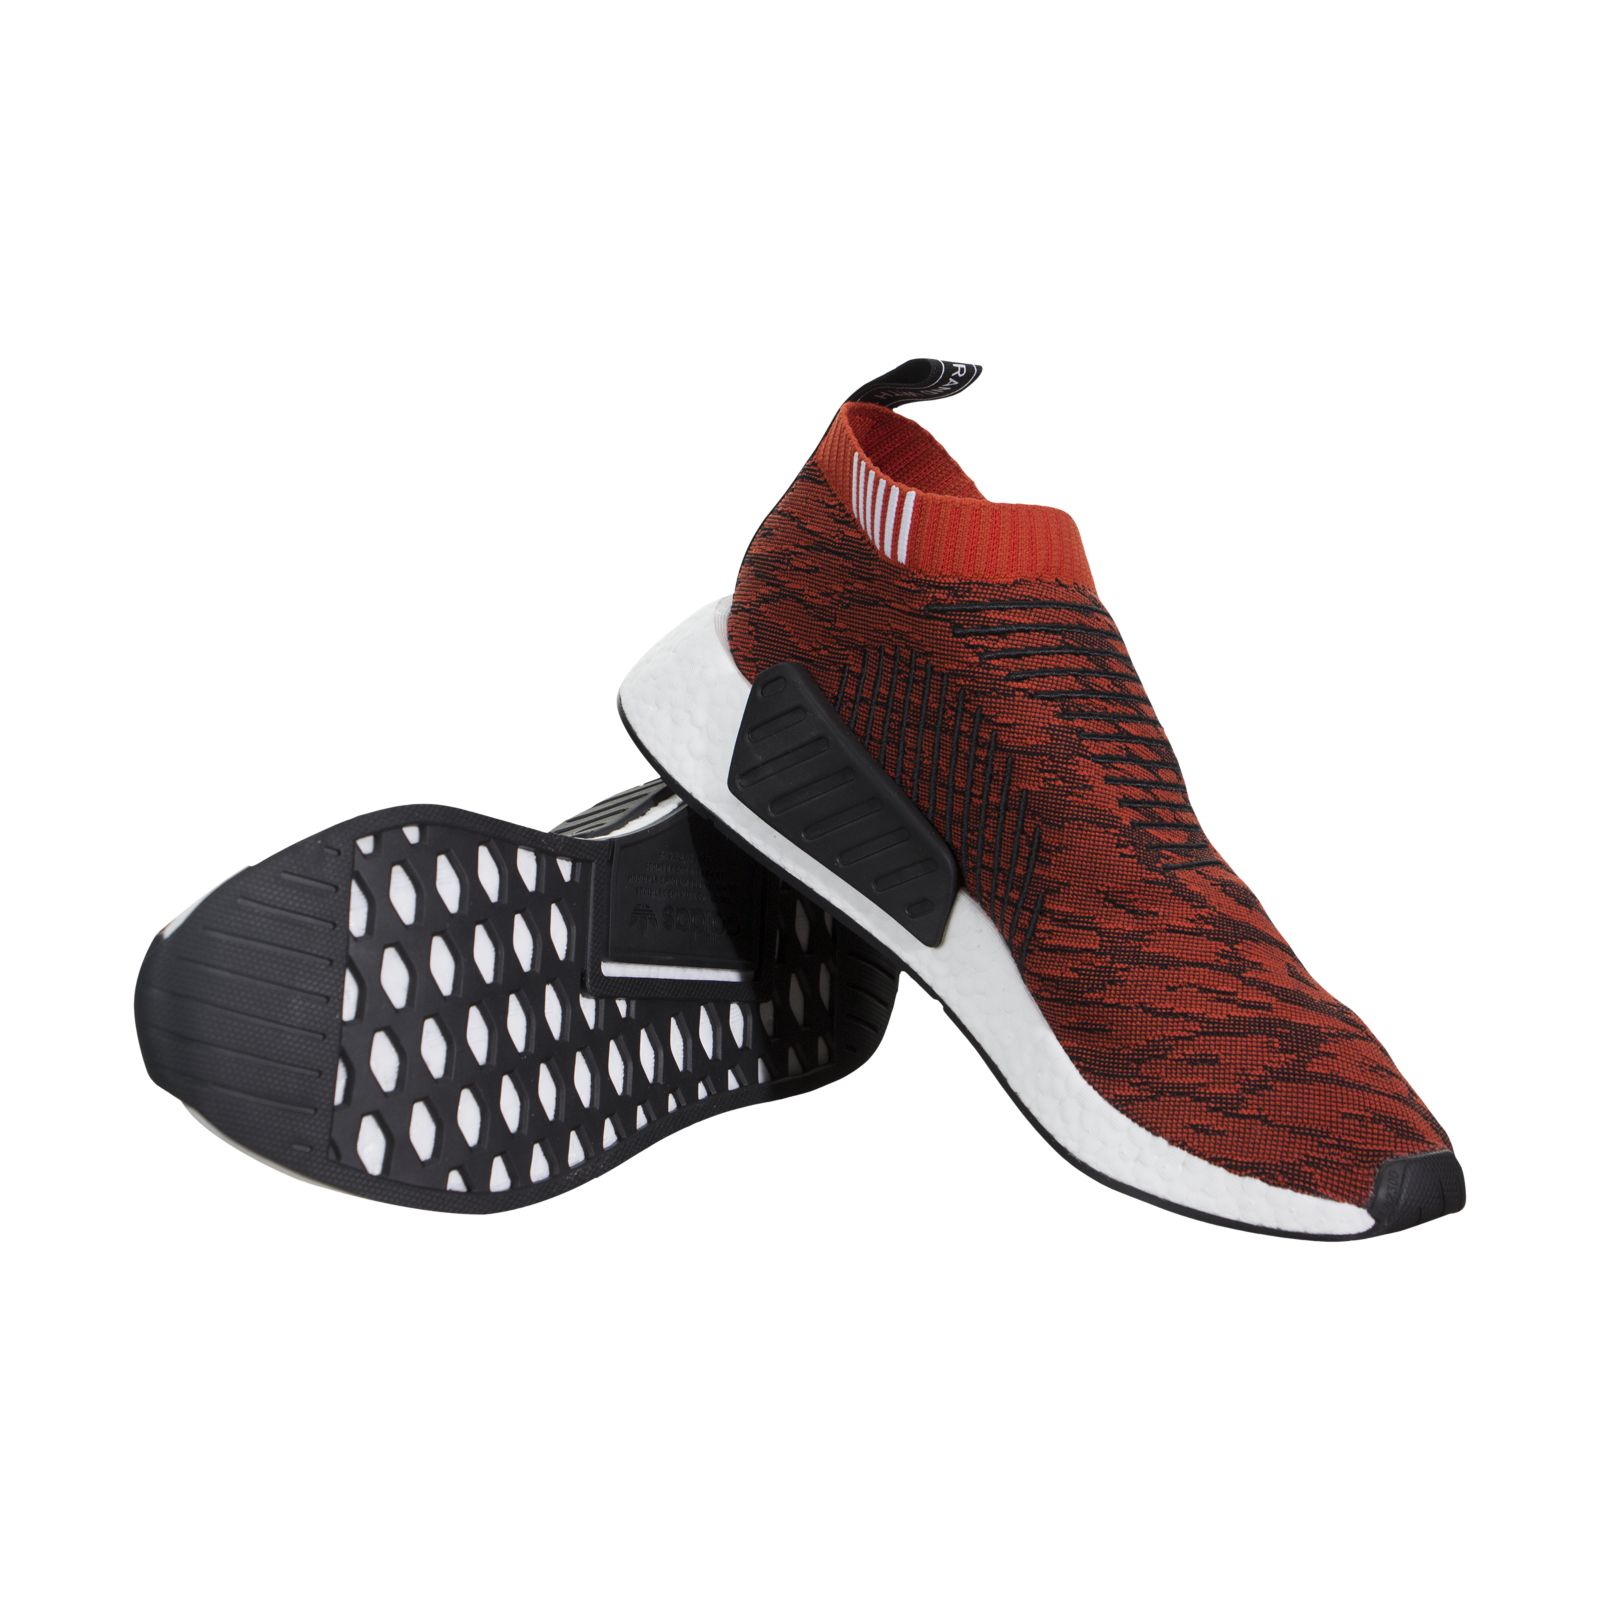 5d90d32da1031 adidas NMD Cs2 PK 8-13 Harvest Red Glitch Black Future Orange By9406 City  Sock 2 8. About this product. Picture 1 of 5  Picture 2 of 5  Picture 3 of  5 ...